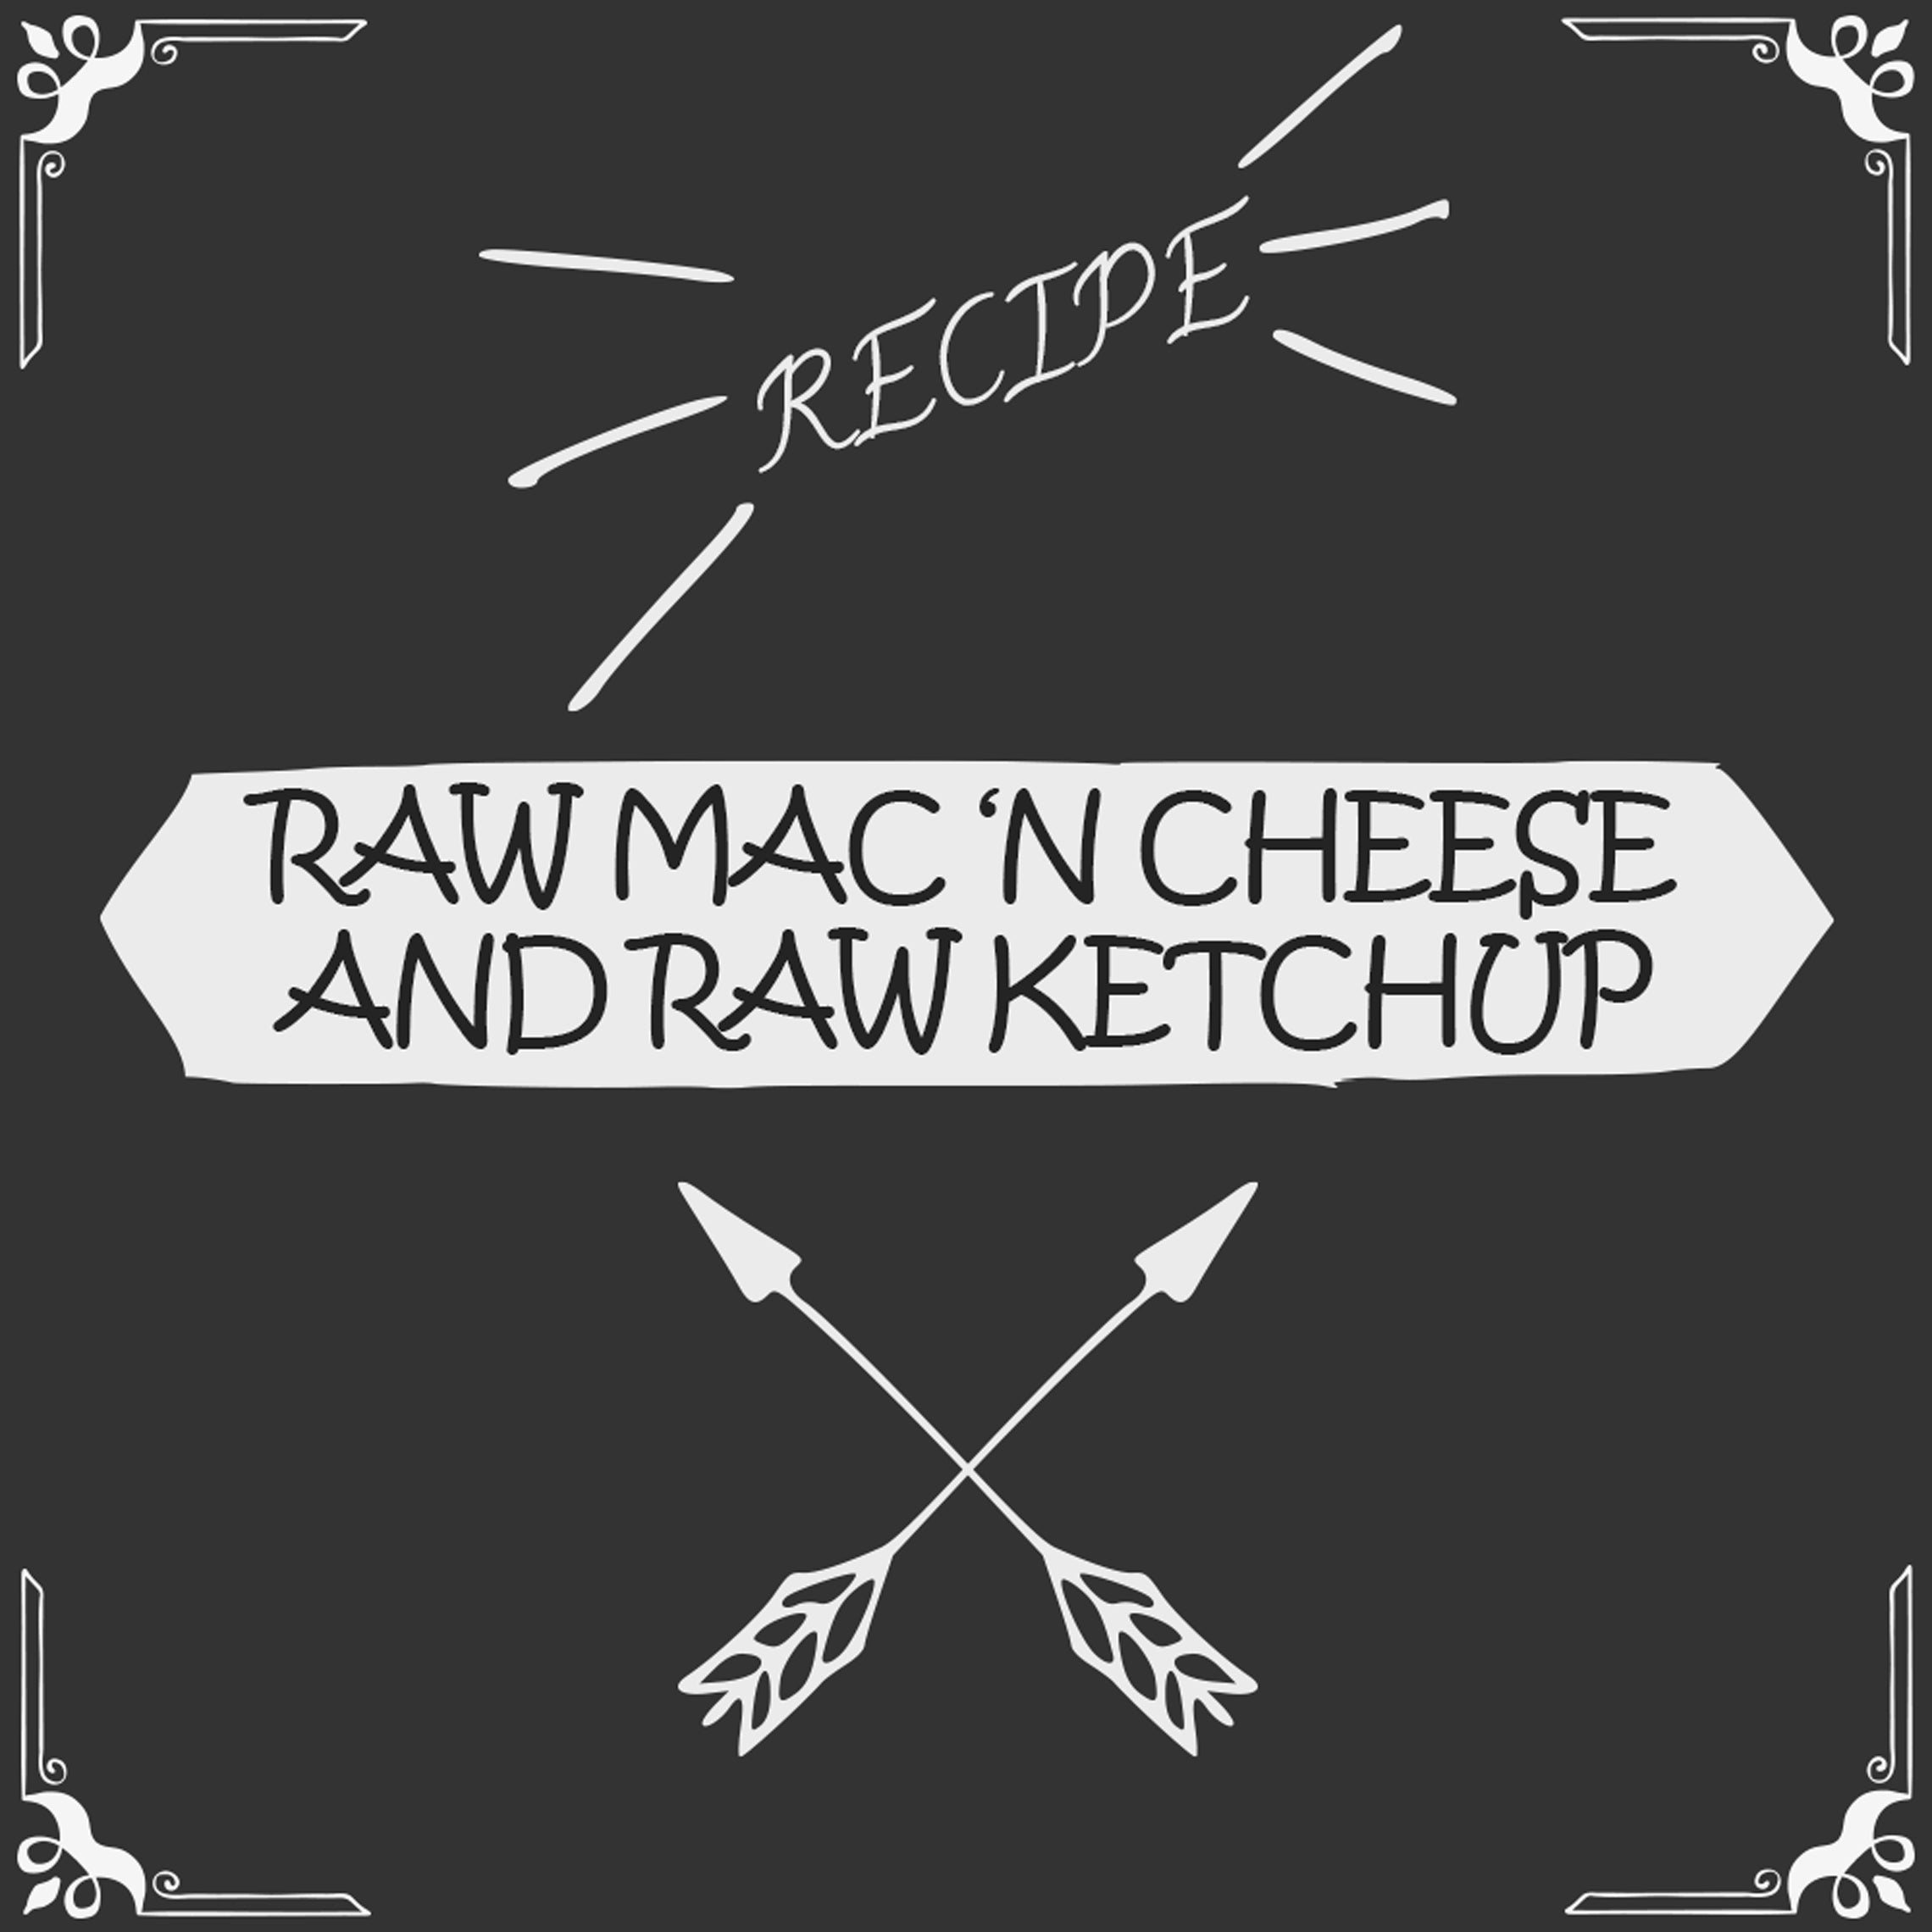 Raw Mac 'n Cheese and Raw Ketchup Recipe - Foods Alive